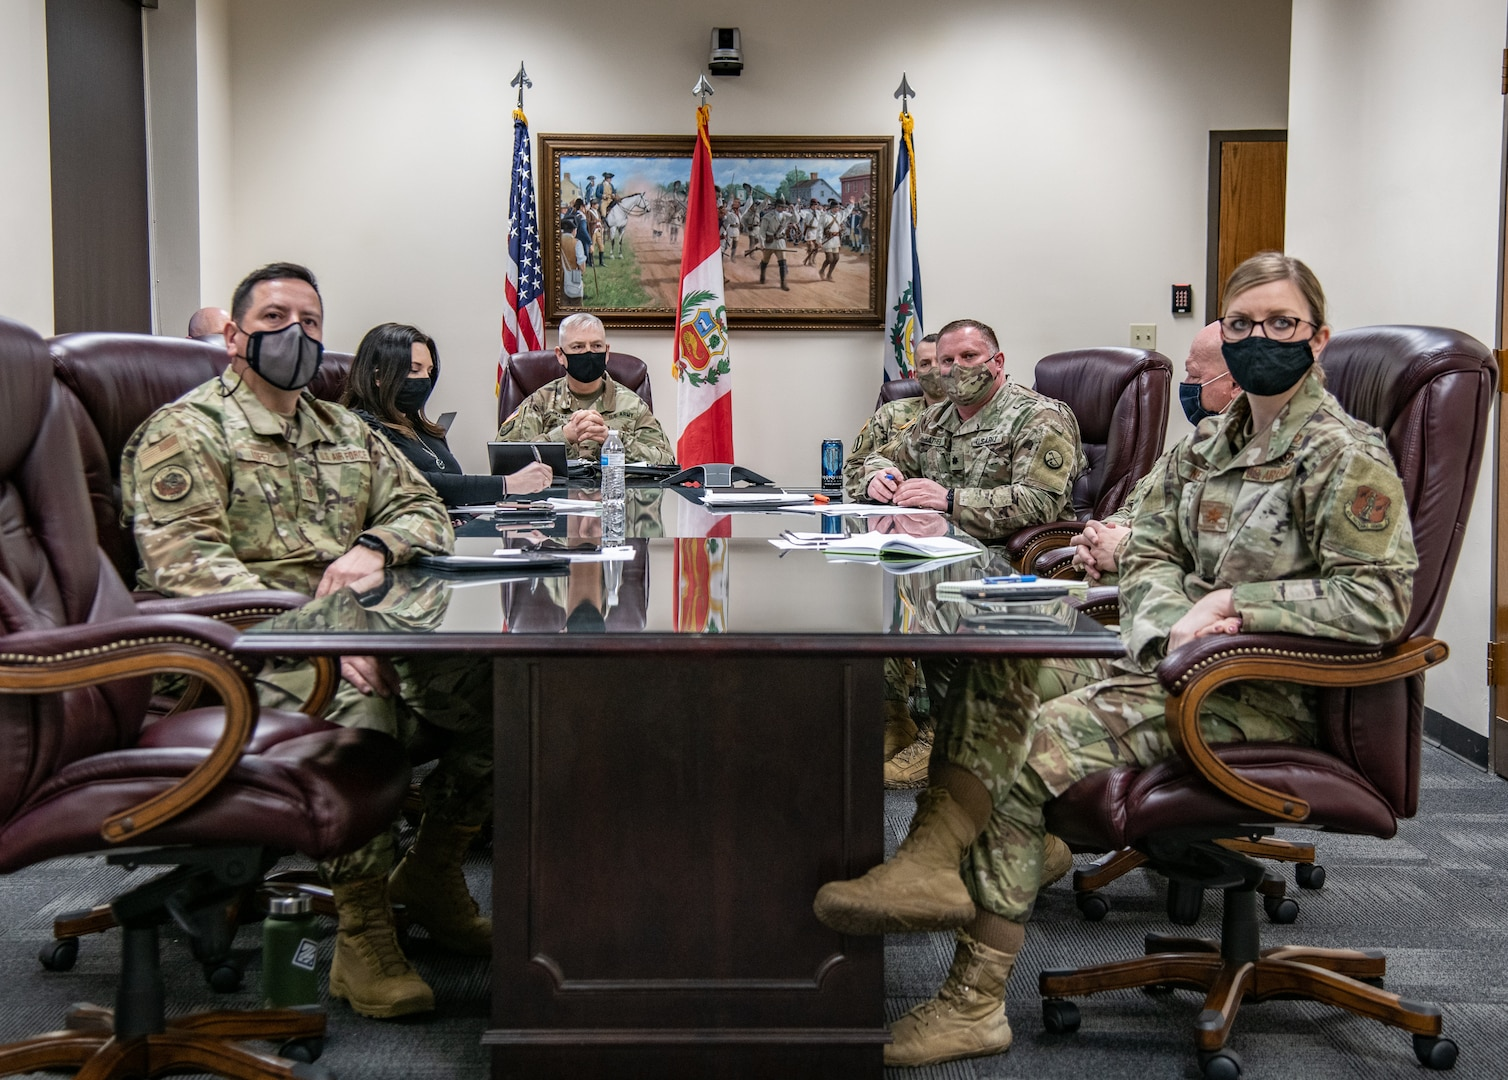 Members of the West Virginia National Guard and the West Virginia Joint Interagency Task Force for COVID-19 Vaccines shared best practices and lessons learned for COVID-19 vaccine distribution with Peru during a virtual workshop March 2, 2021. West Virginia and Peru have a longstanding relationship under the National Guard Bureau State Partnership Program.